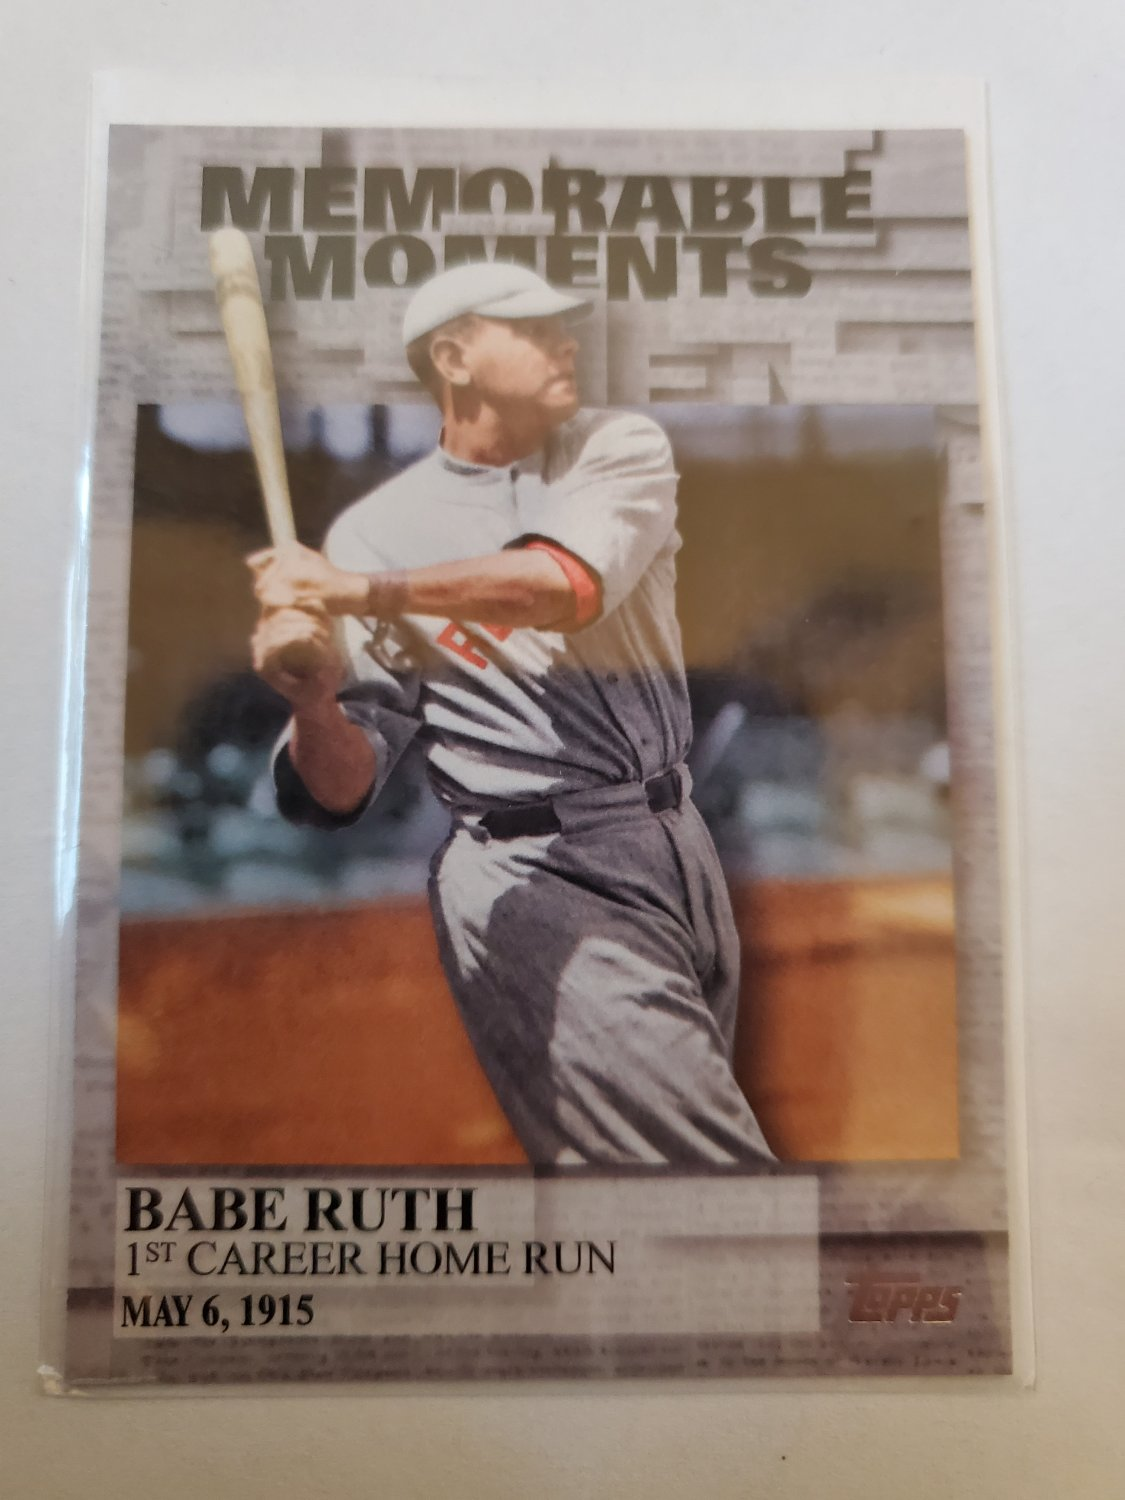 Babe Ruth 2017 Topps Memorable Moments Insert Card